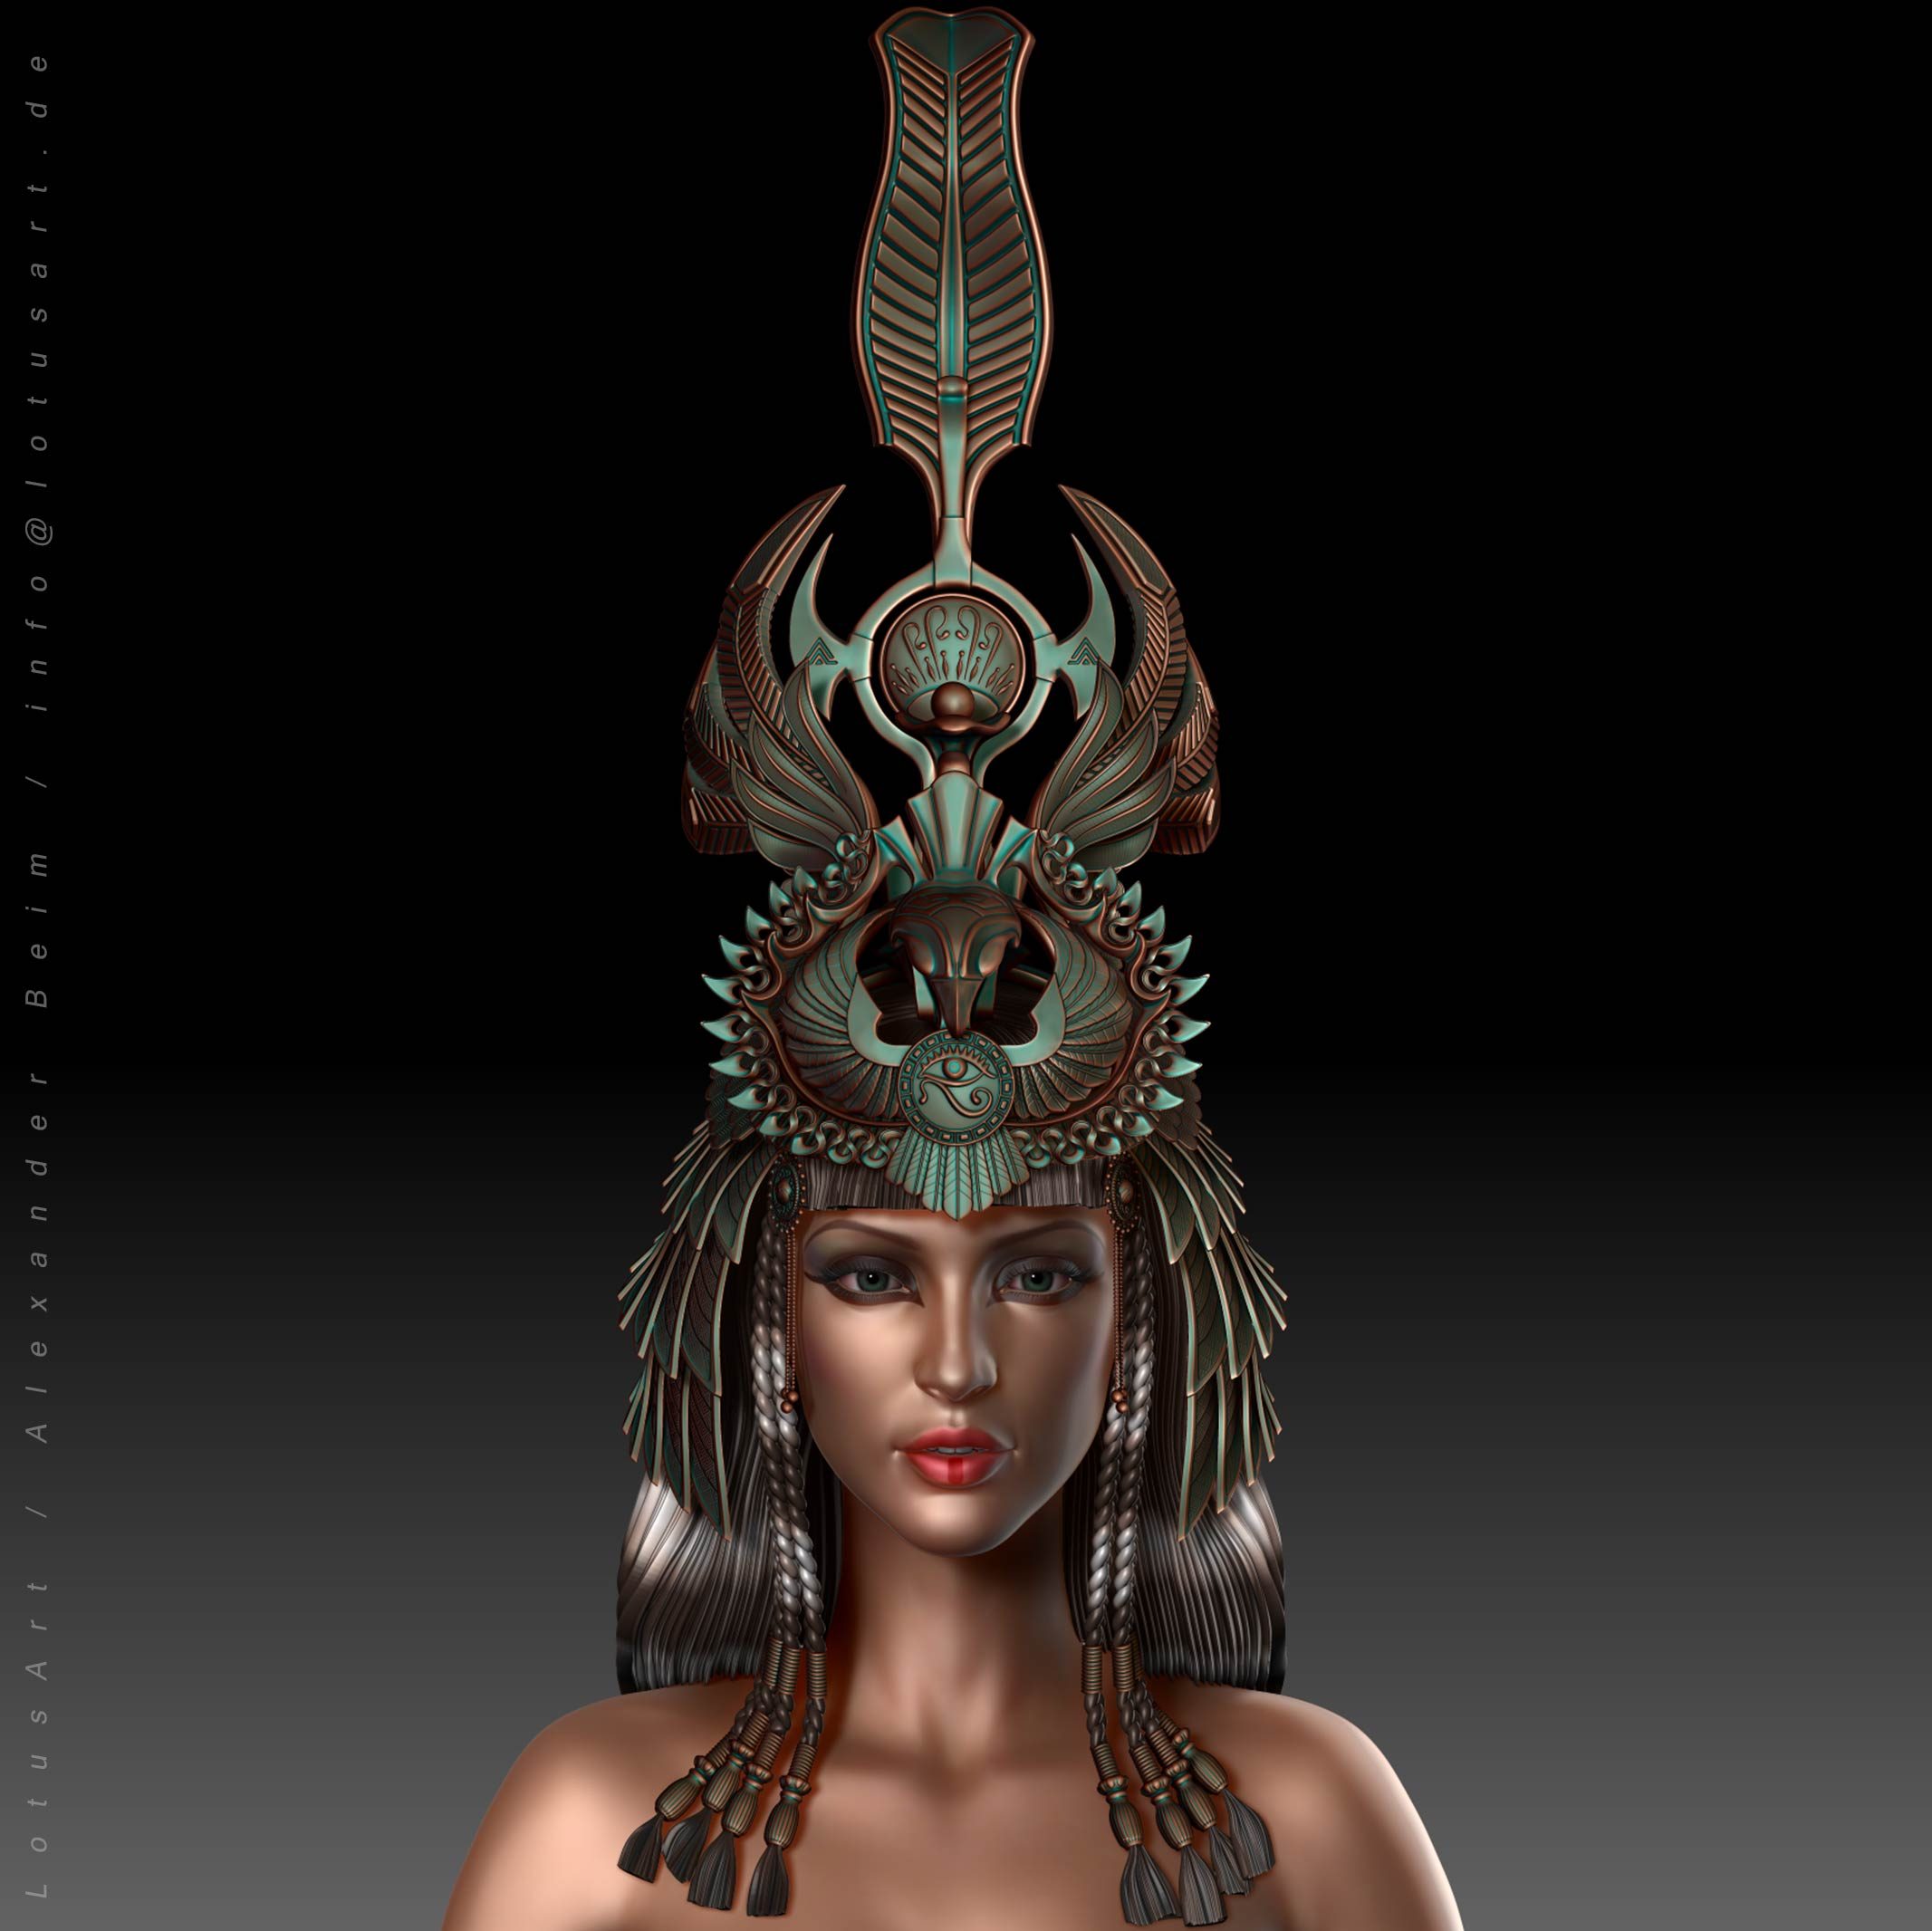 character_concept_game_realtime_female_woman 3D Cleopatra WIP